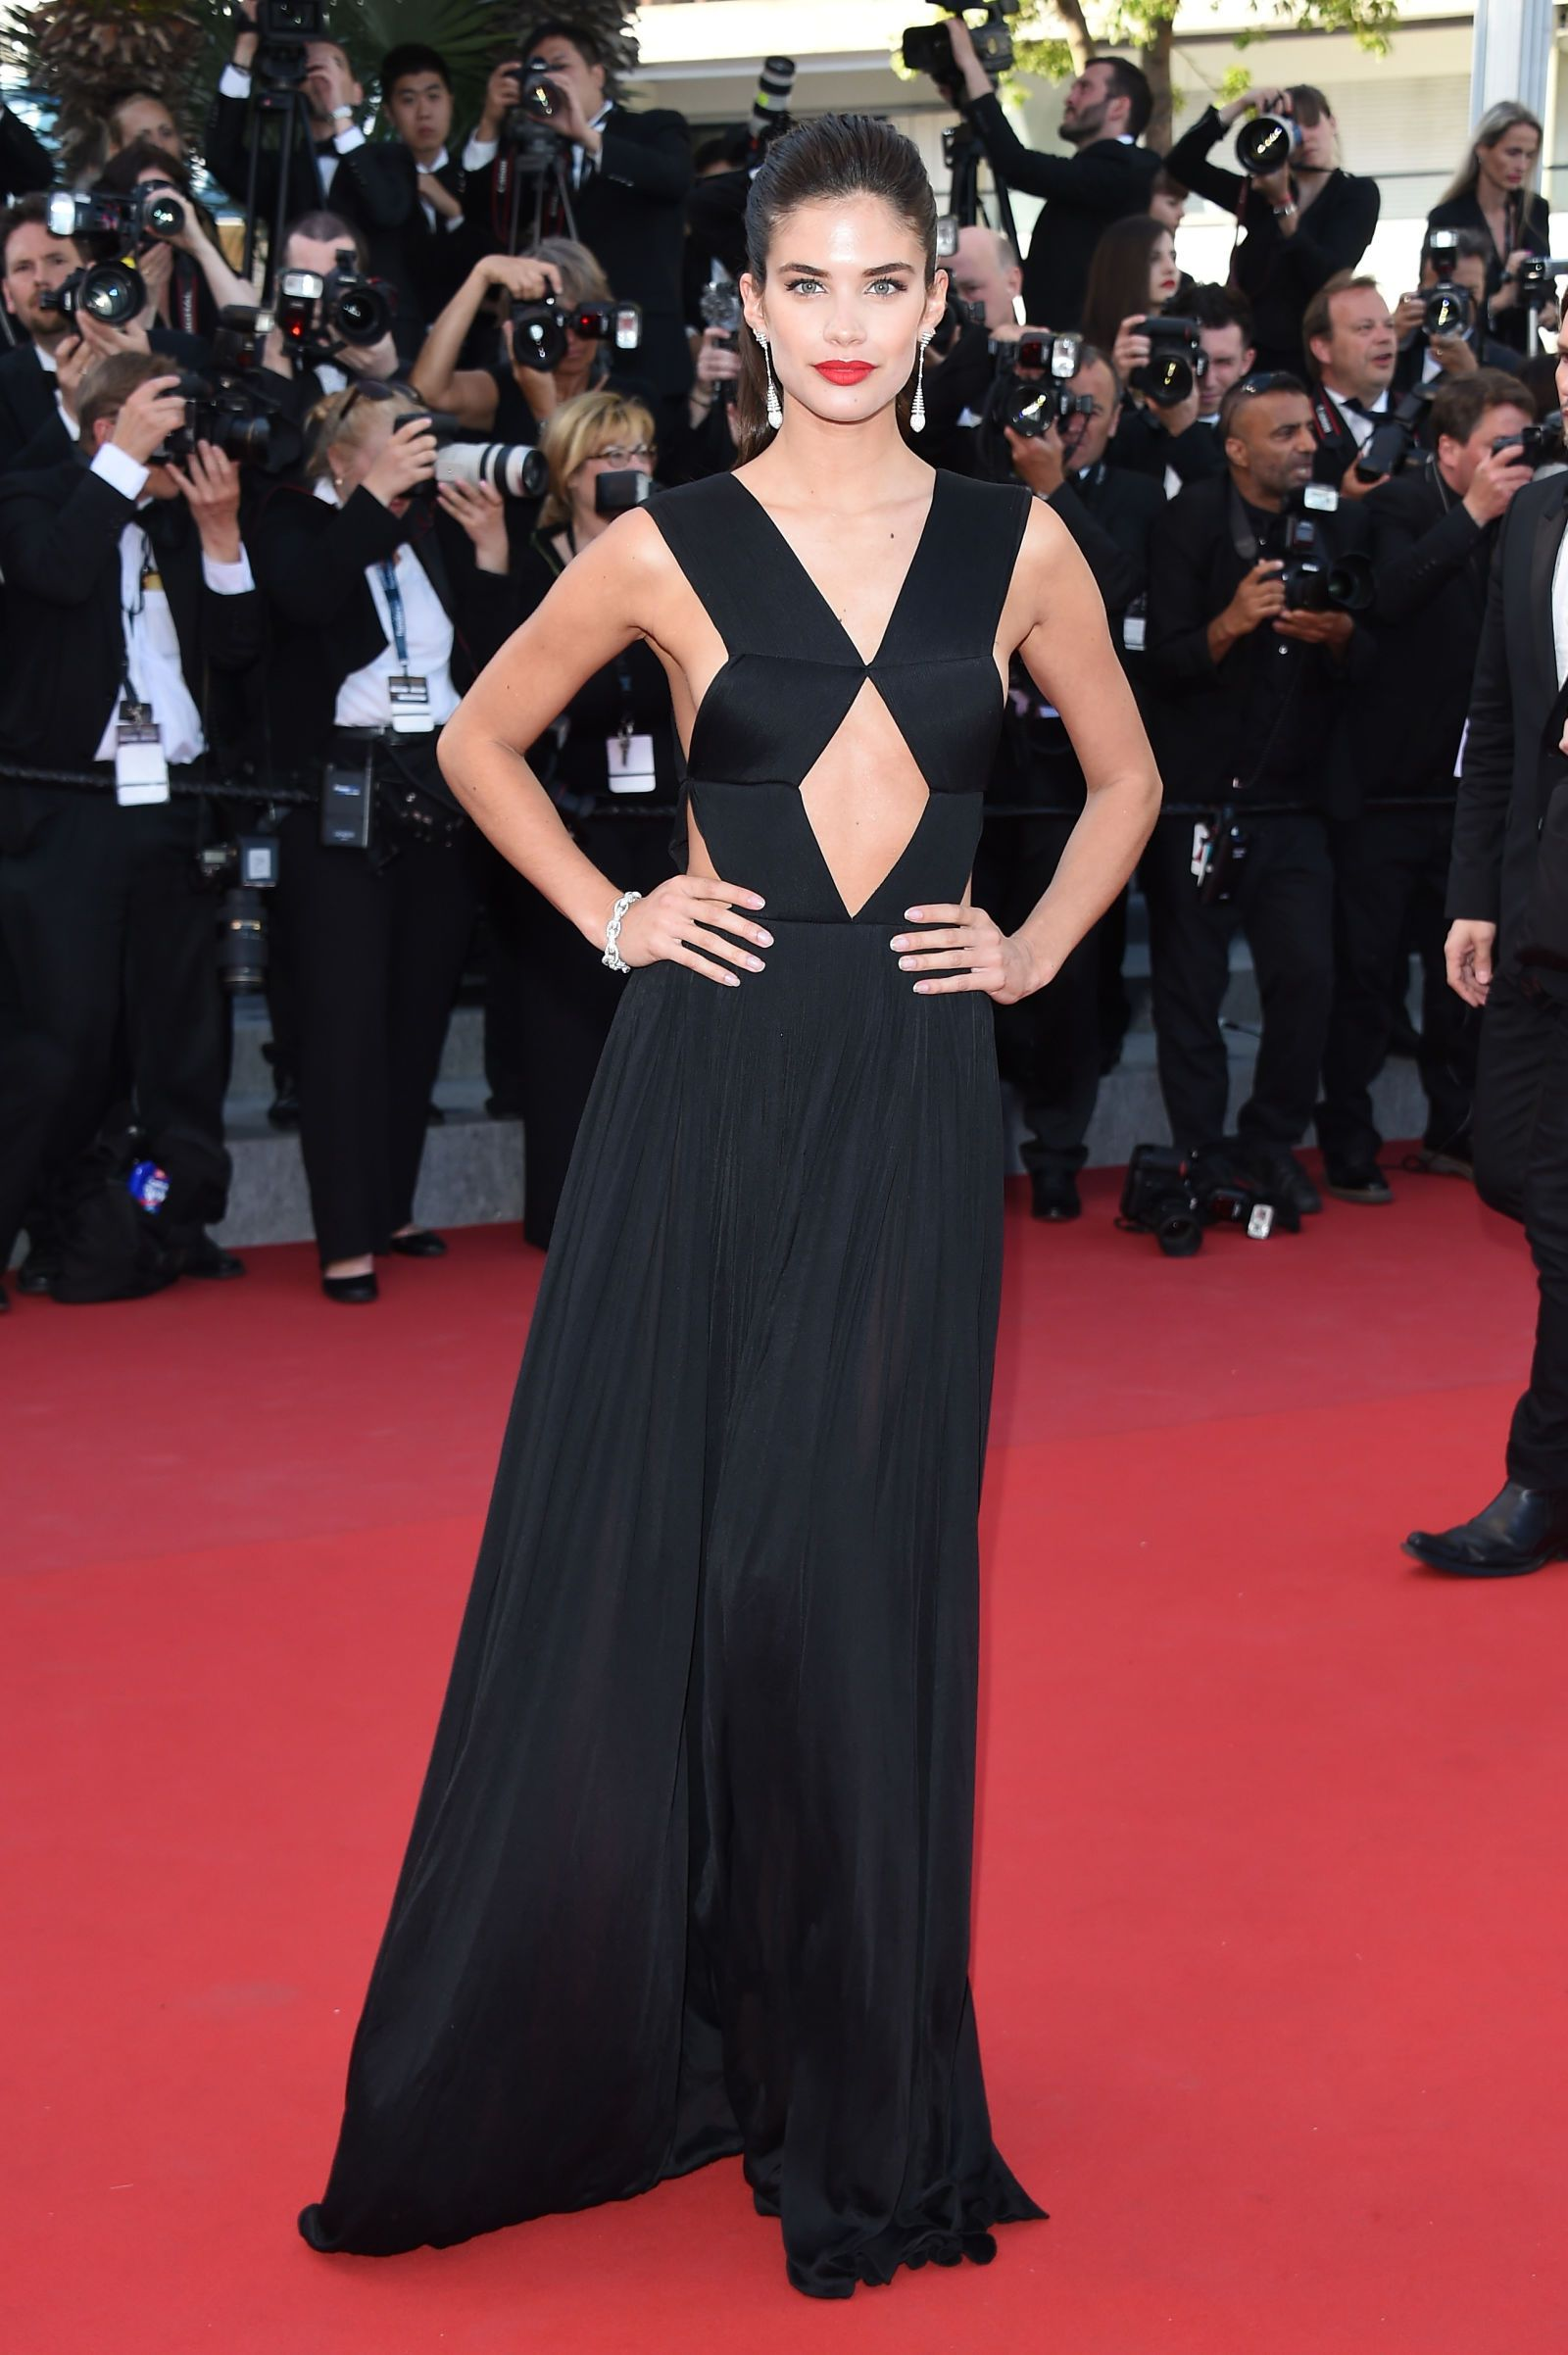 The Best Looks From The Cannes Film Festival Red Carpet